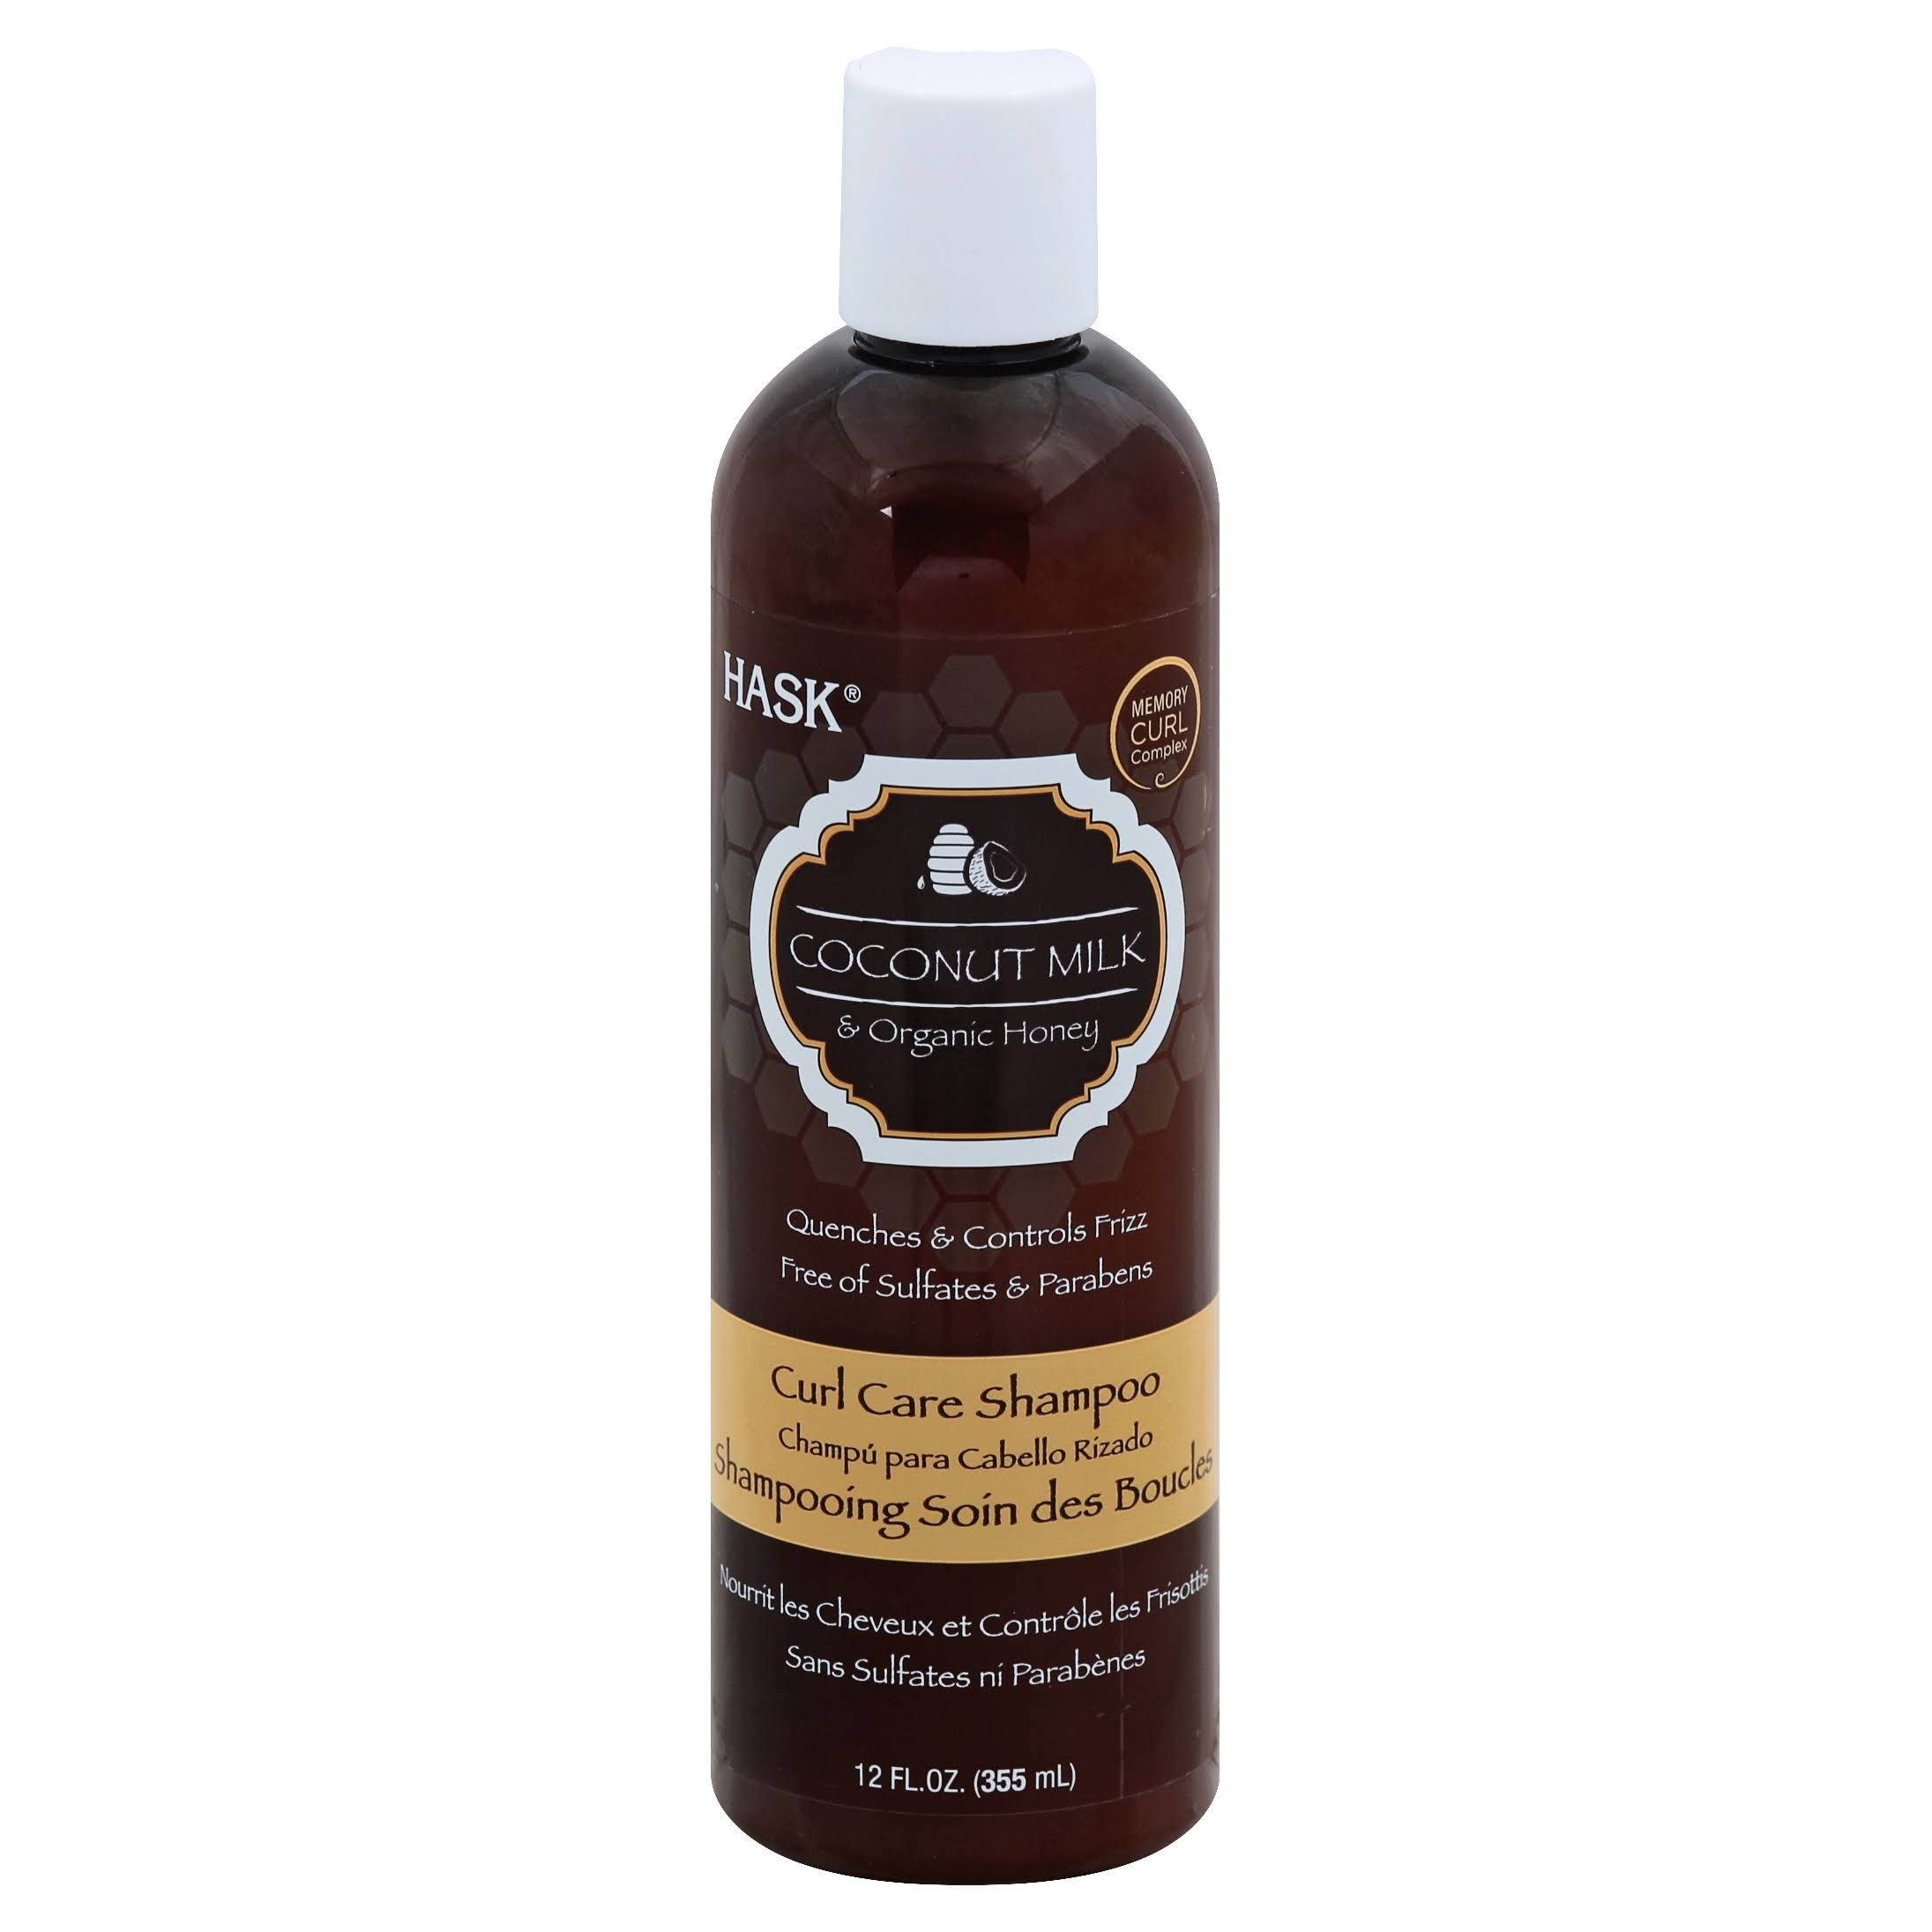 Hask Coconut Milk and Organic Honey Curl Care Shampoo - 355ml